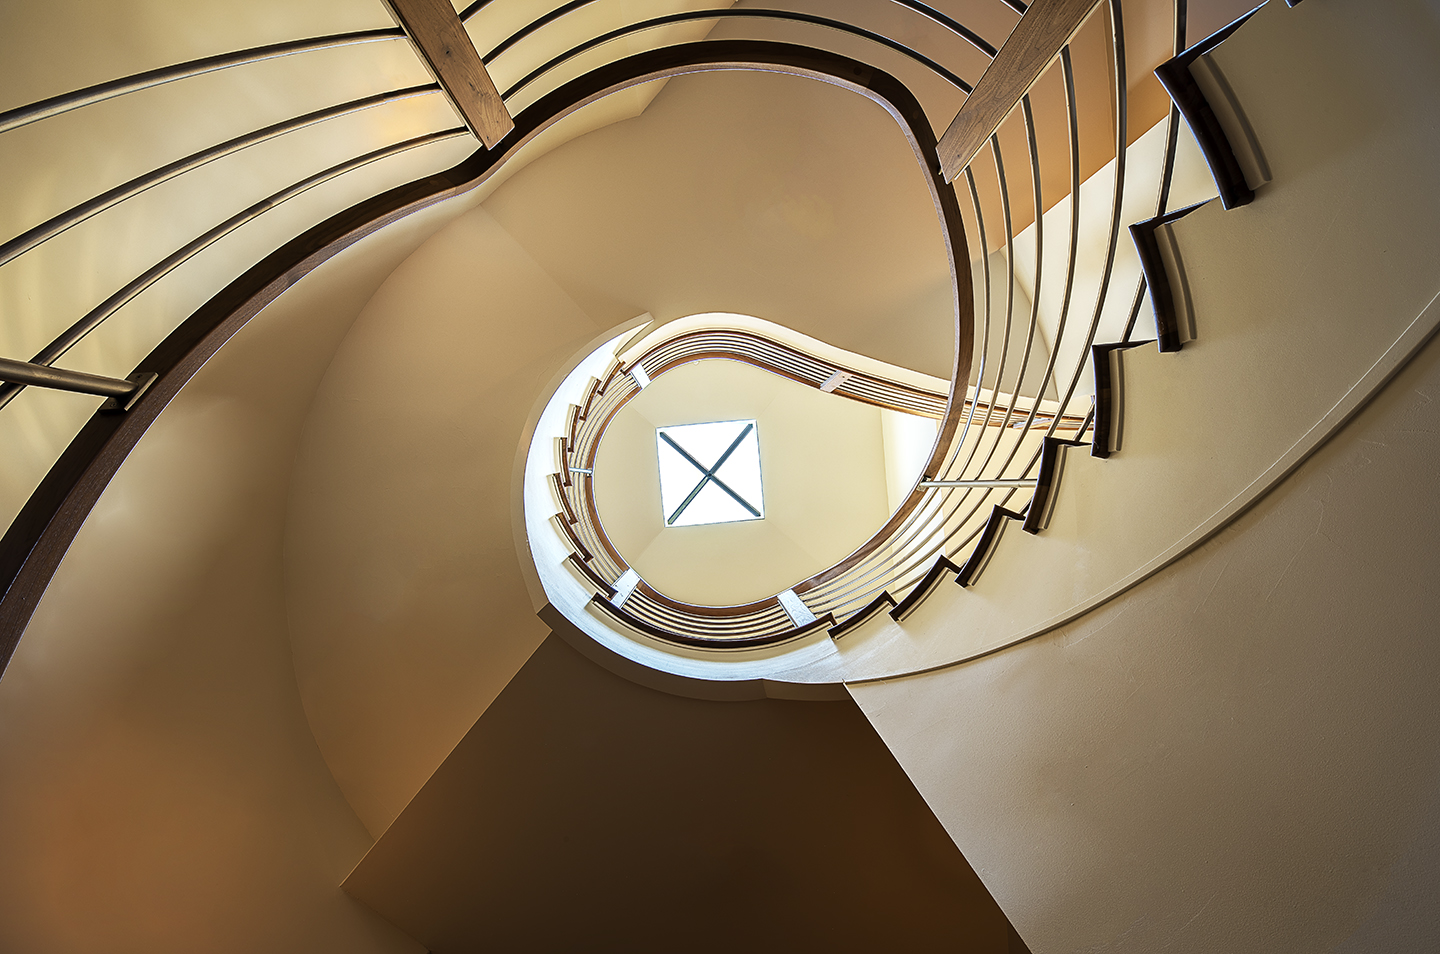 Portico Spiral Stairs 2.jpg